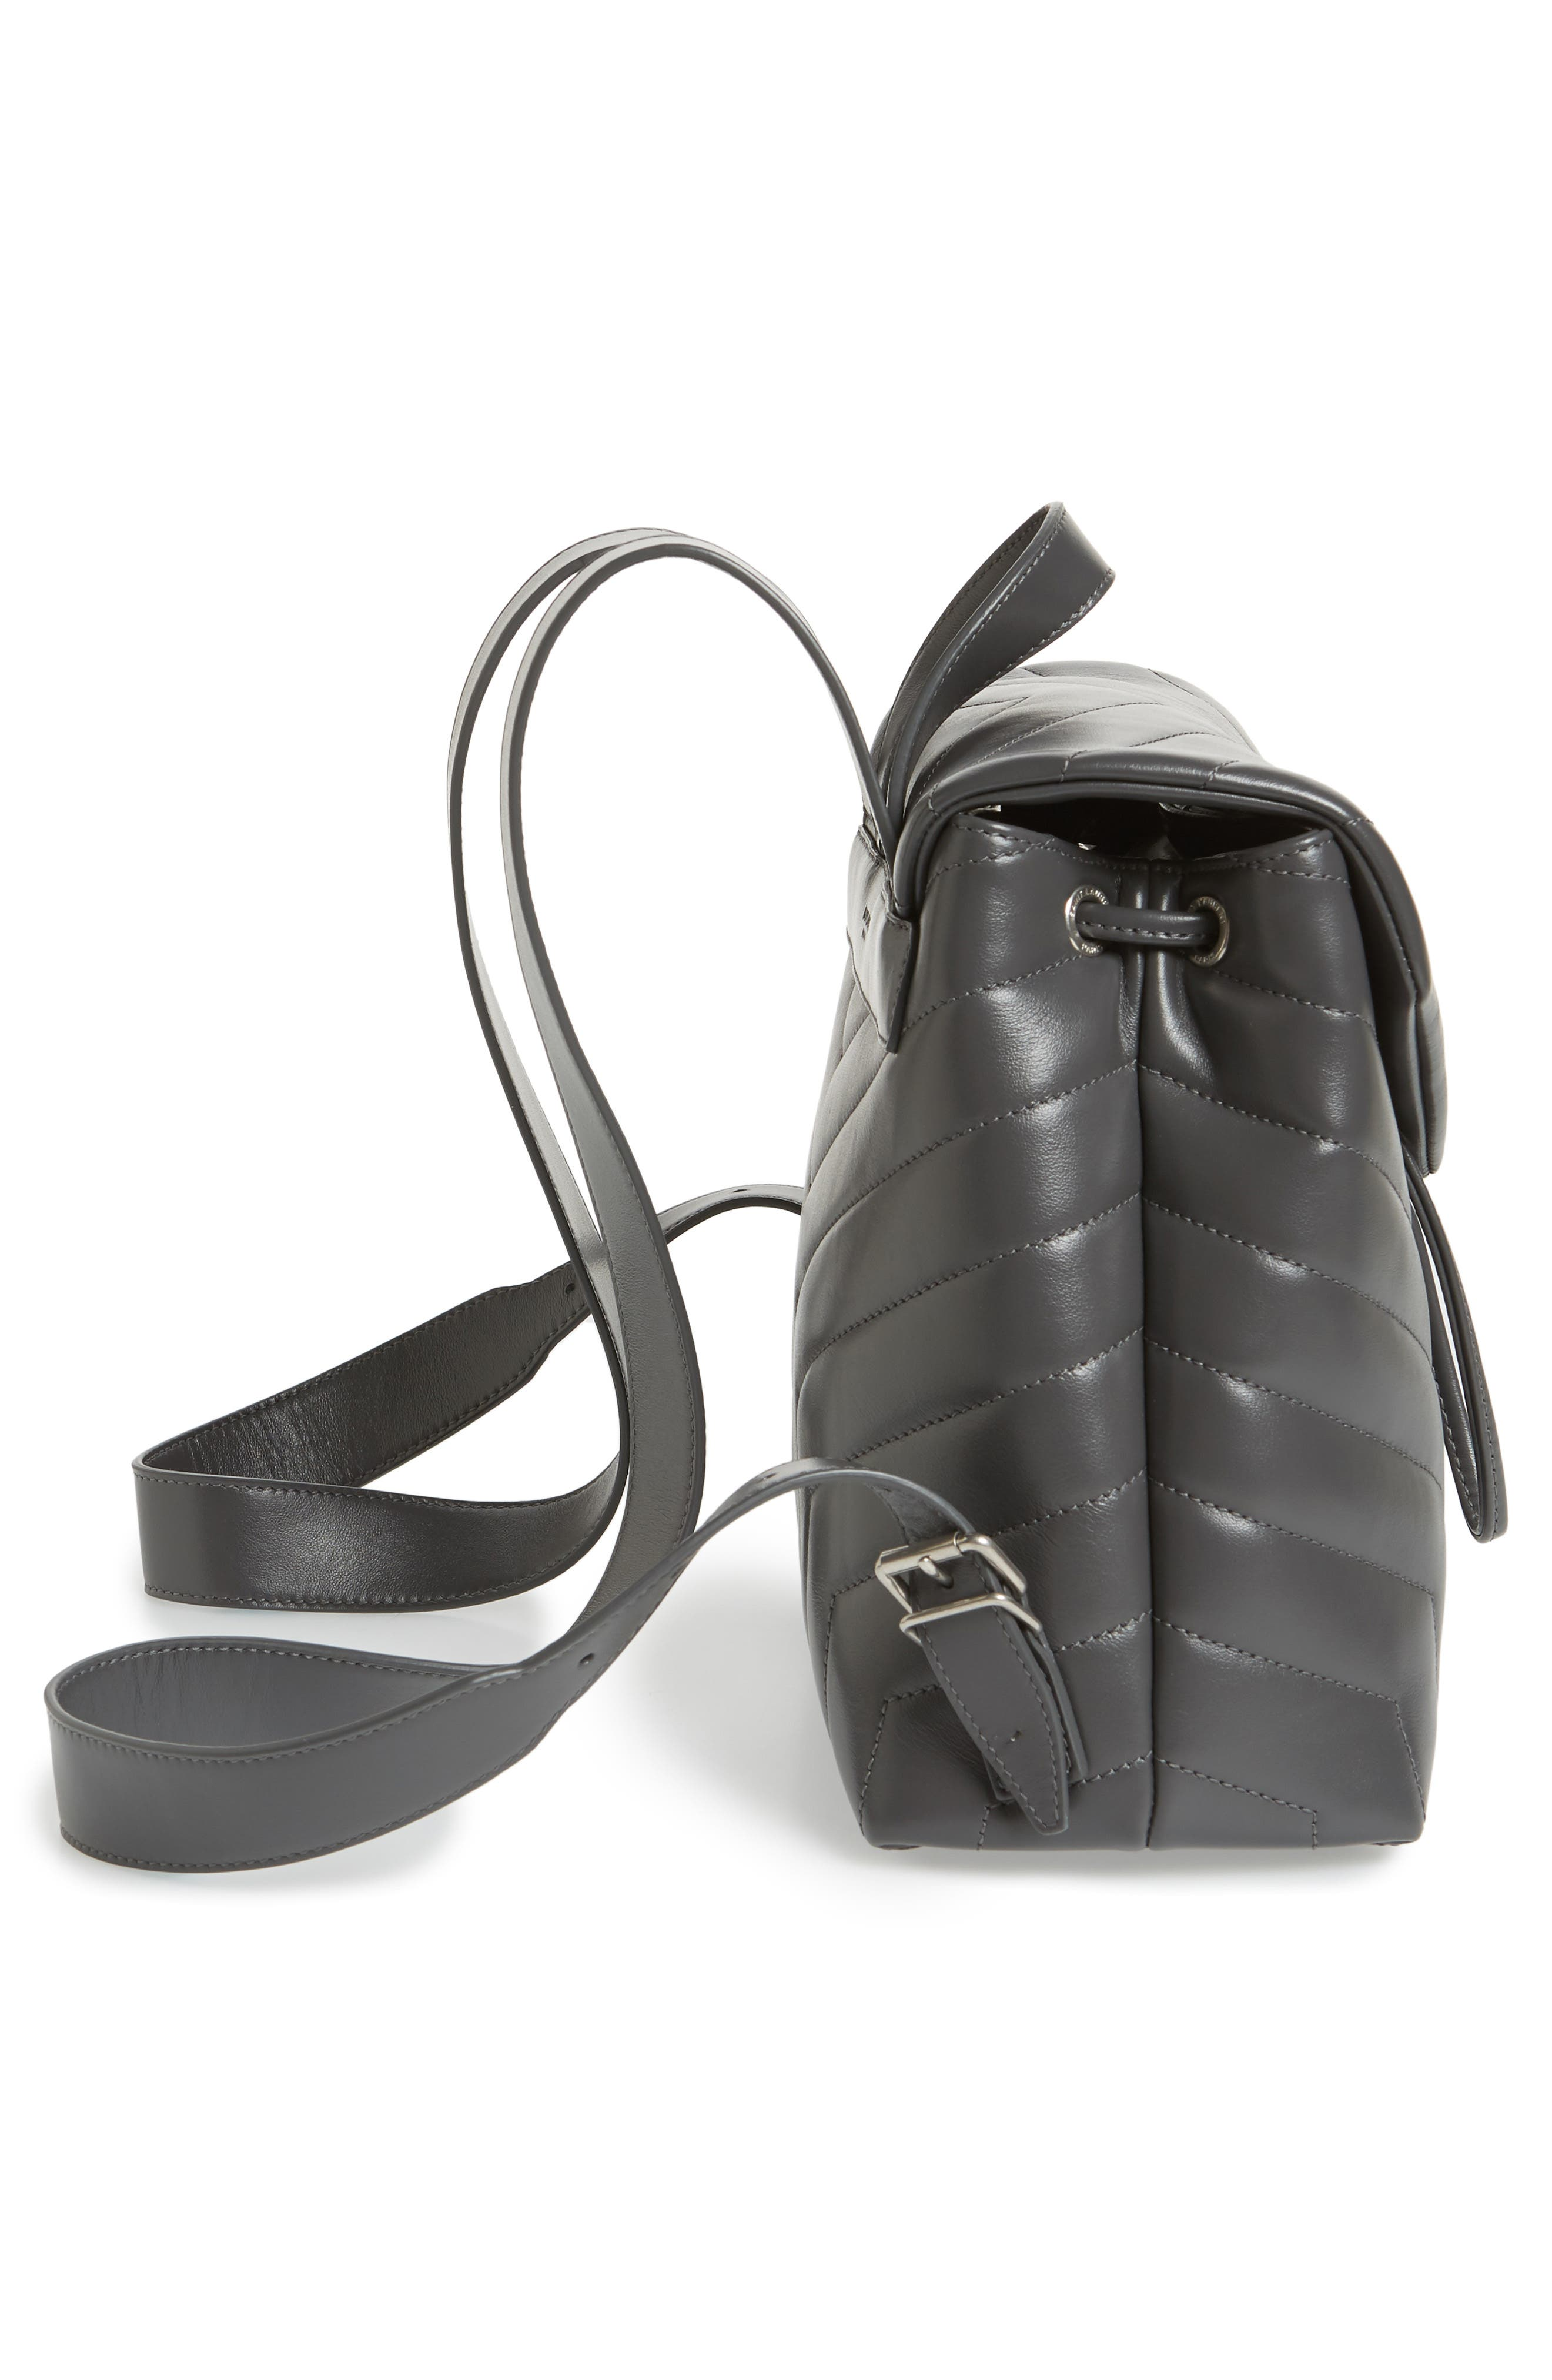 Small Loulou Quilted Calfskin Leather Backpack,                             Alternate thumbnail 5, color,                             Storm/ Storm